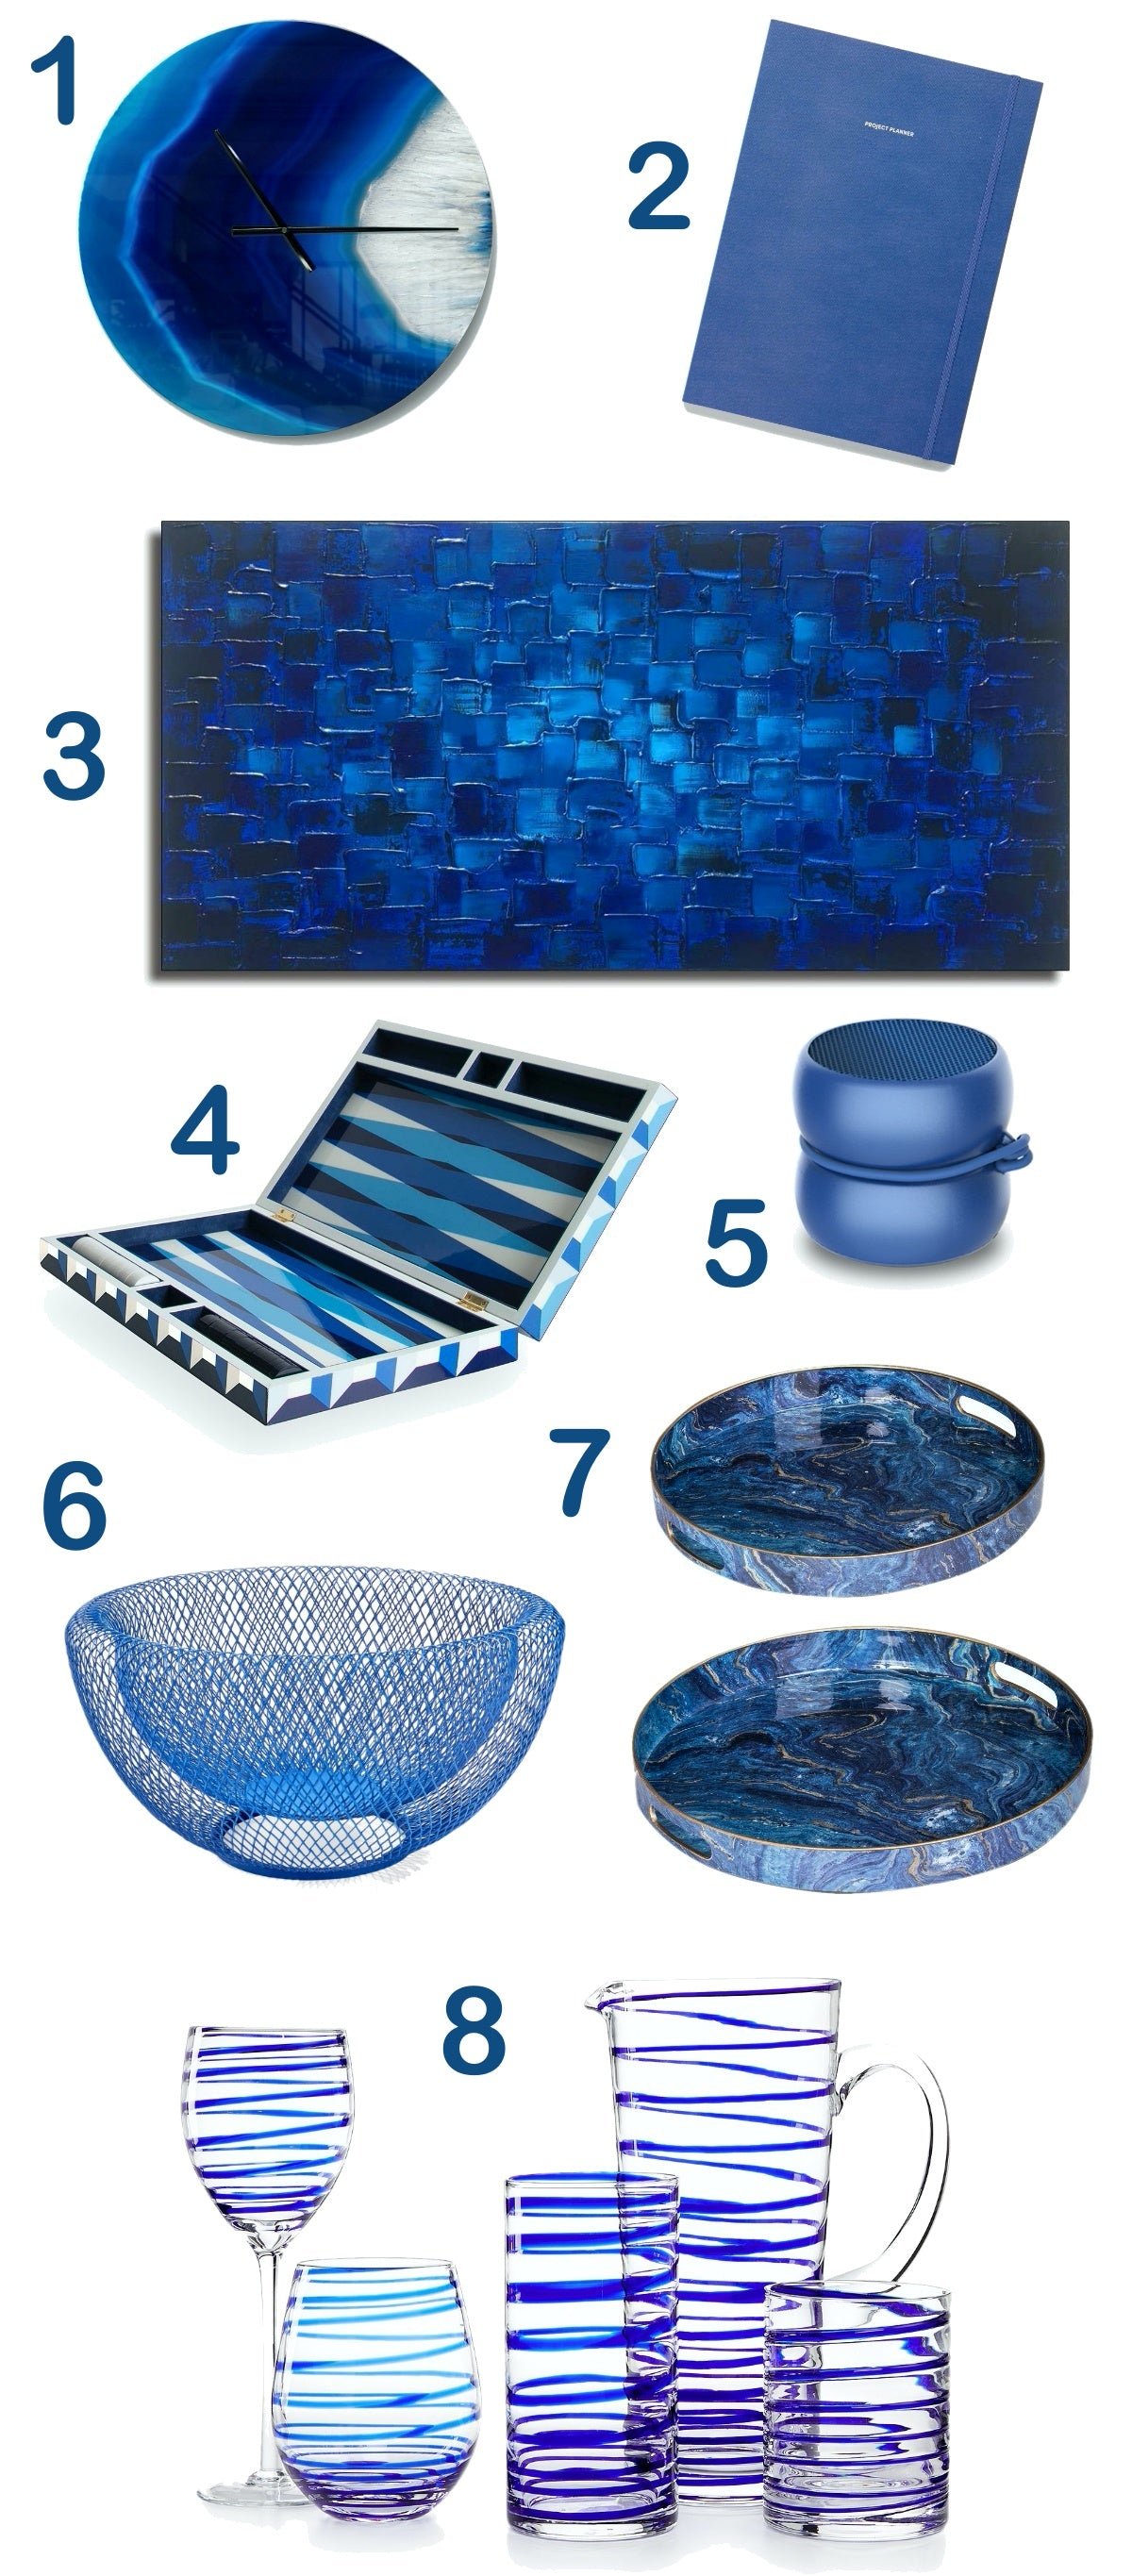 Color Craze Holiday Gift Guide - Pantone's Color of the Year 2020 - Classic Blue